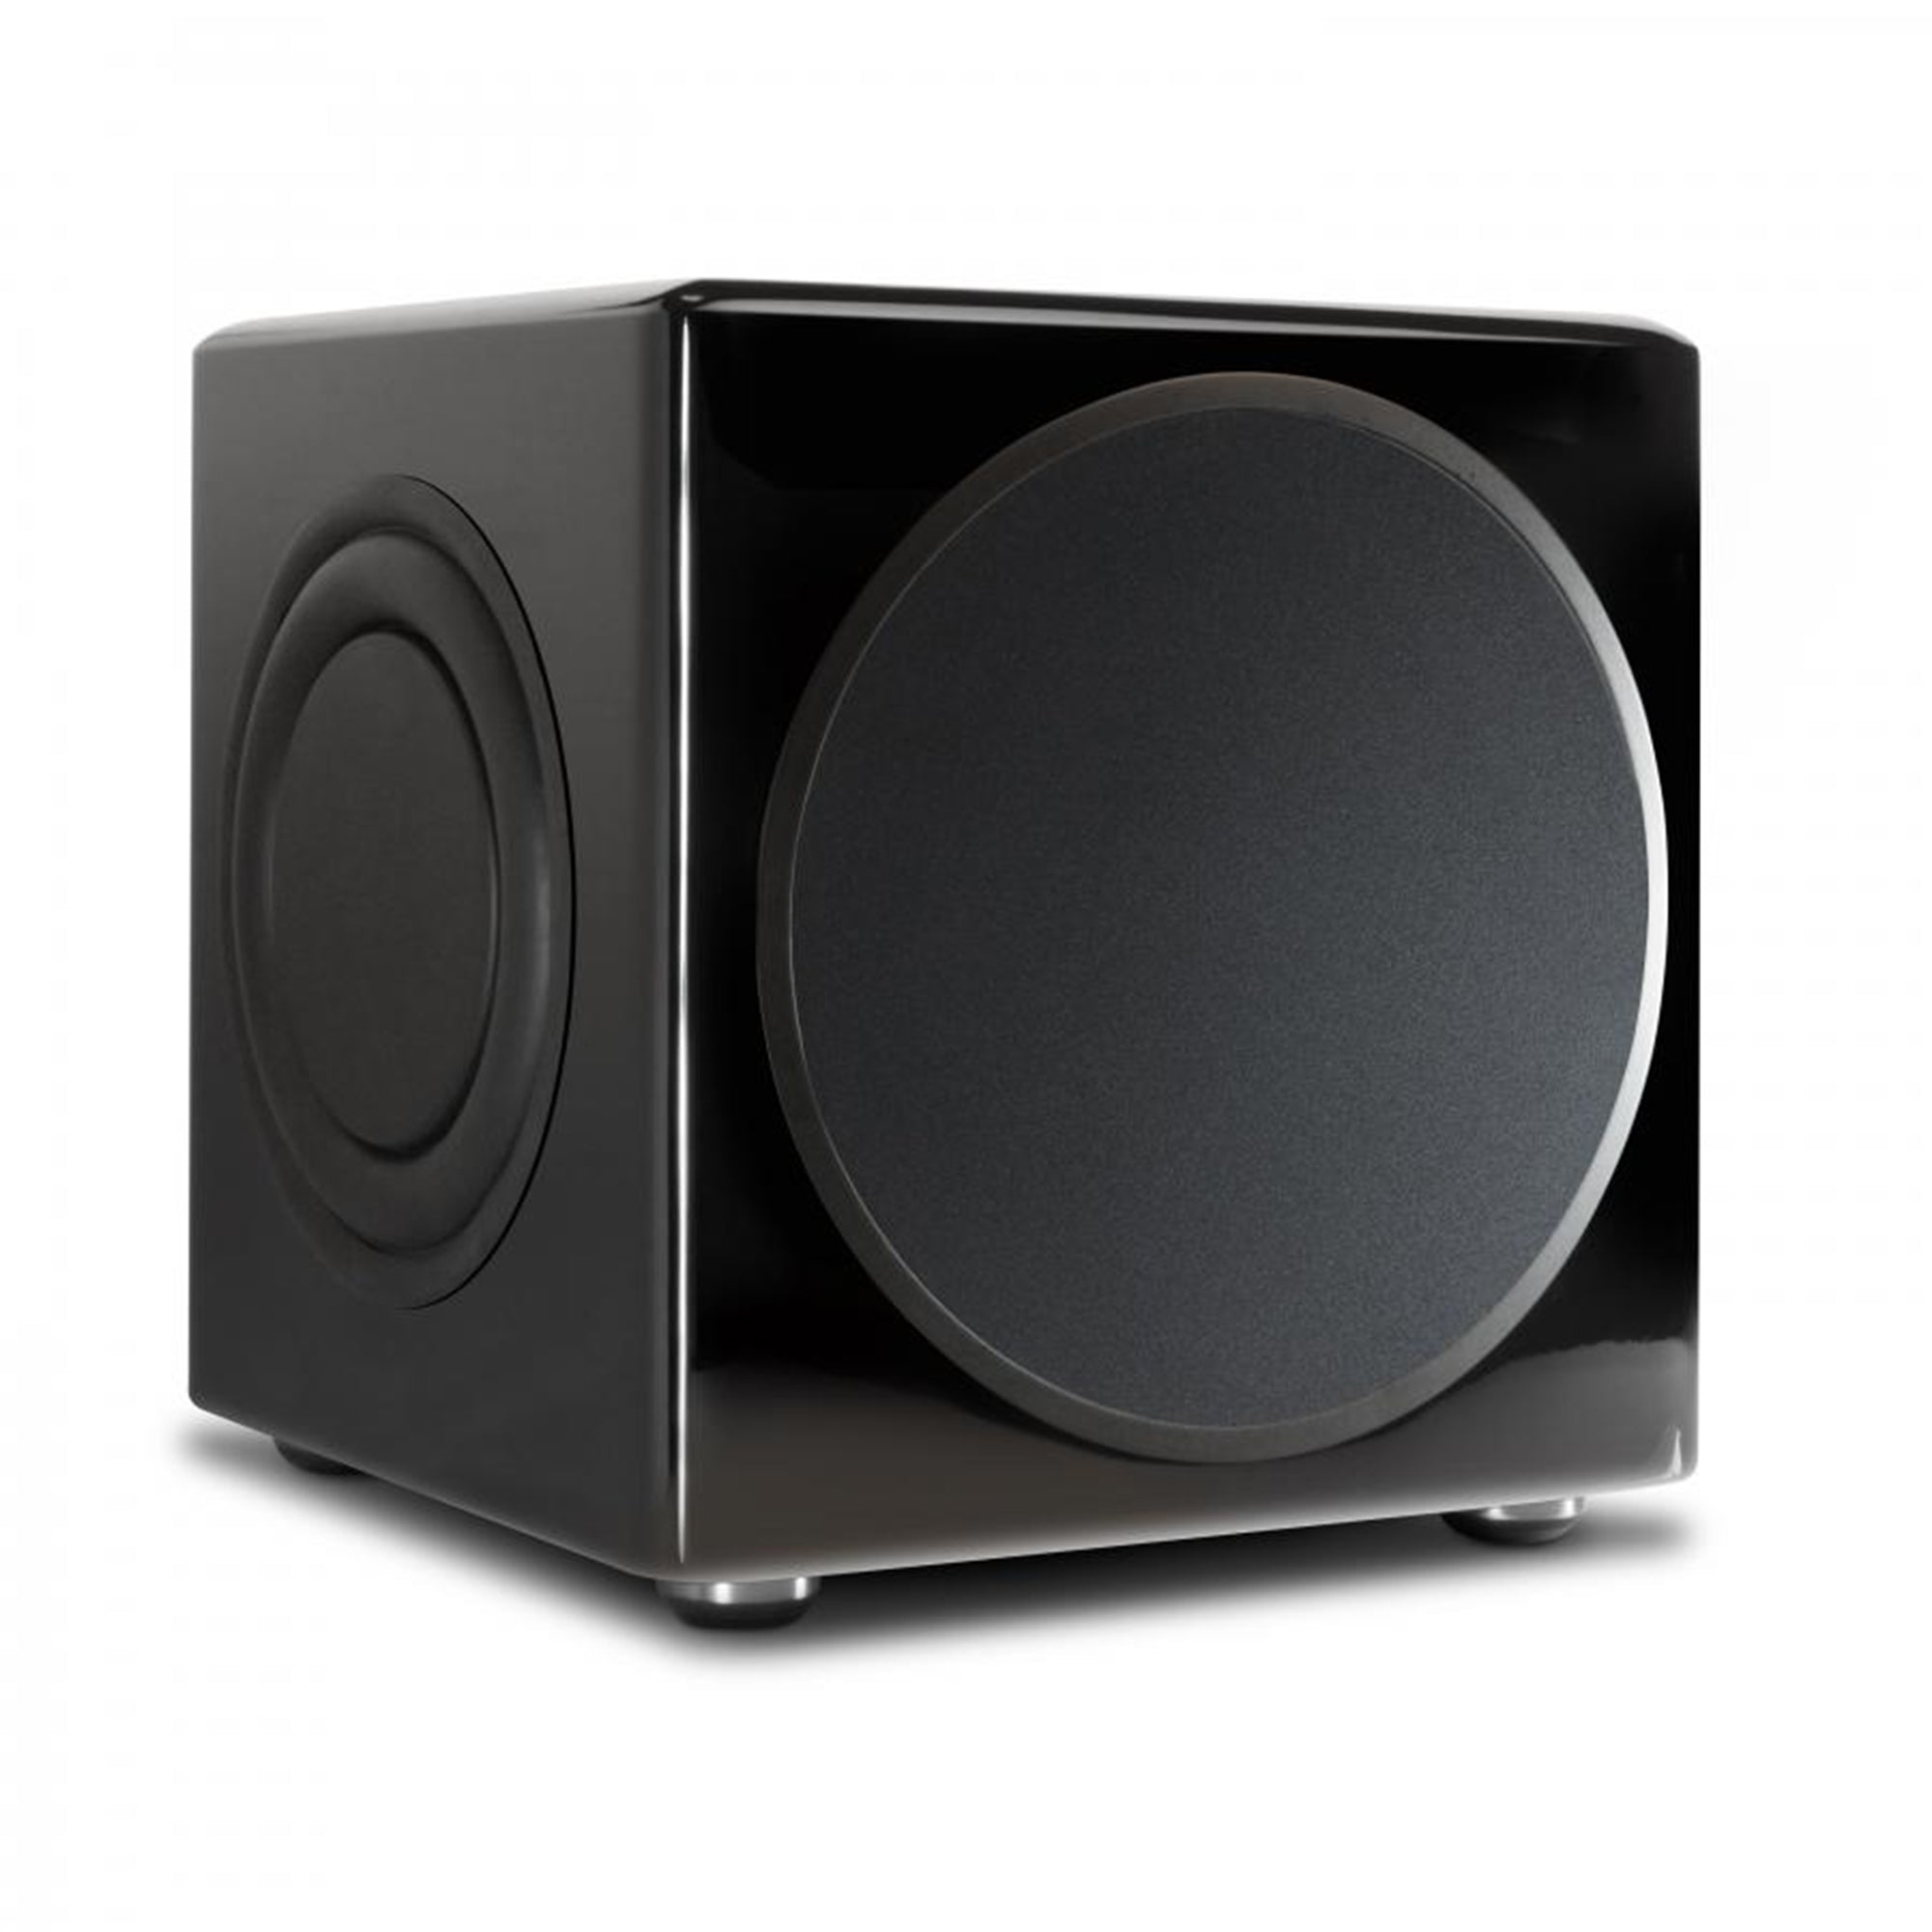 PSB SubSeries 450 DSP Subwoofer